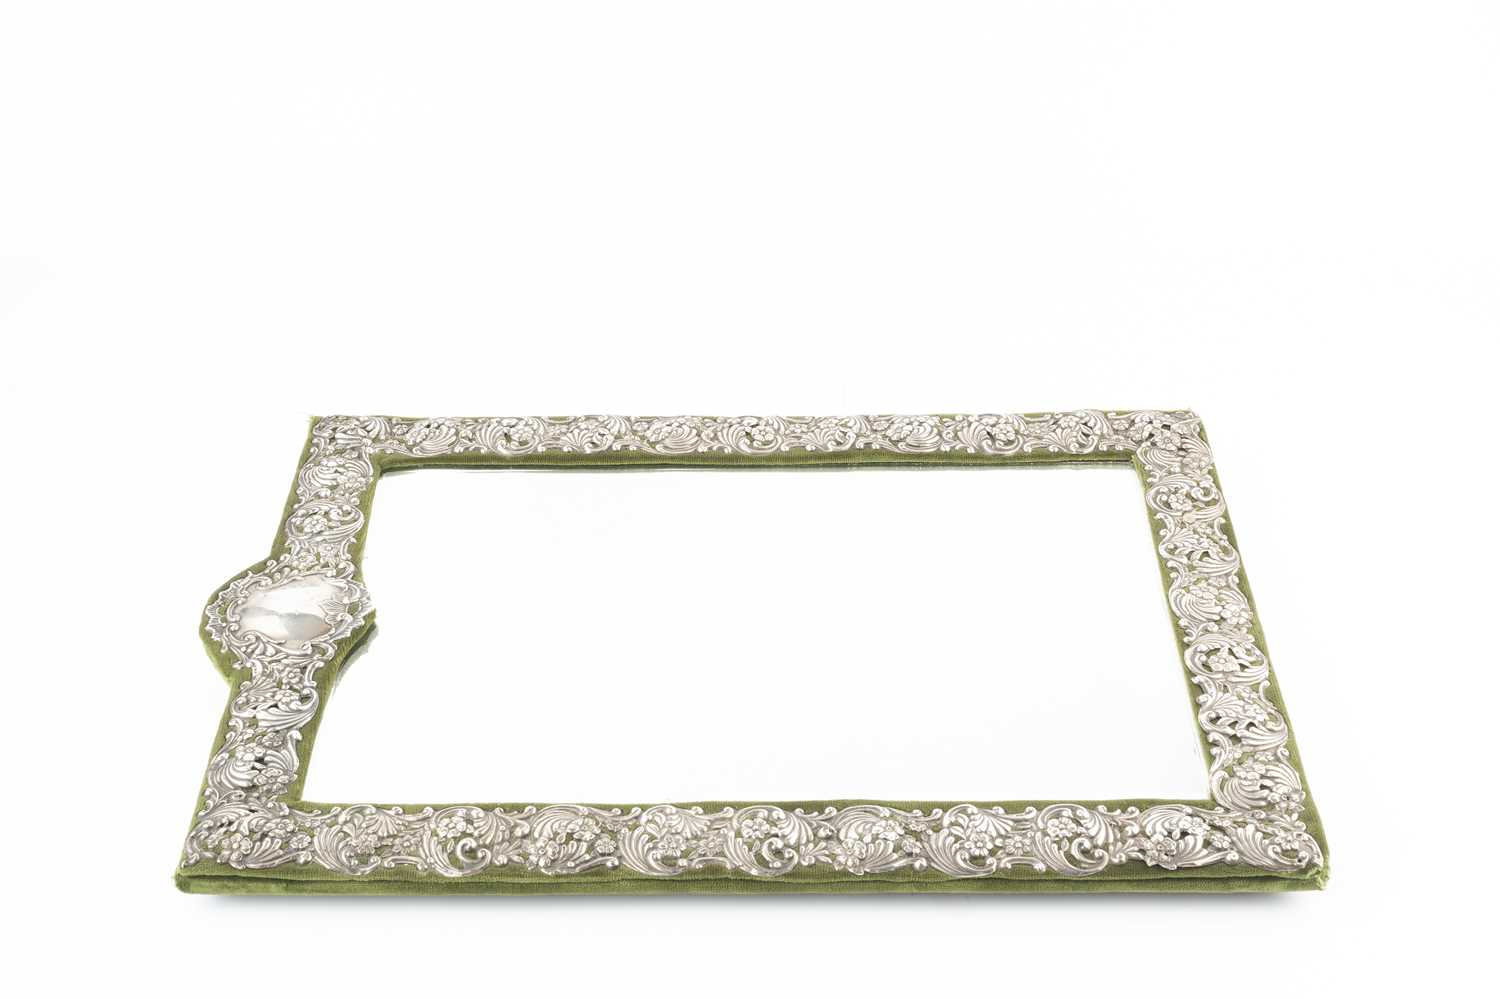 A late Victorian silver mounted easel dressing table mirror, pierced and embossed with repeated